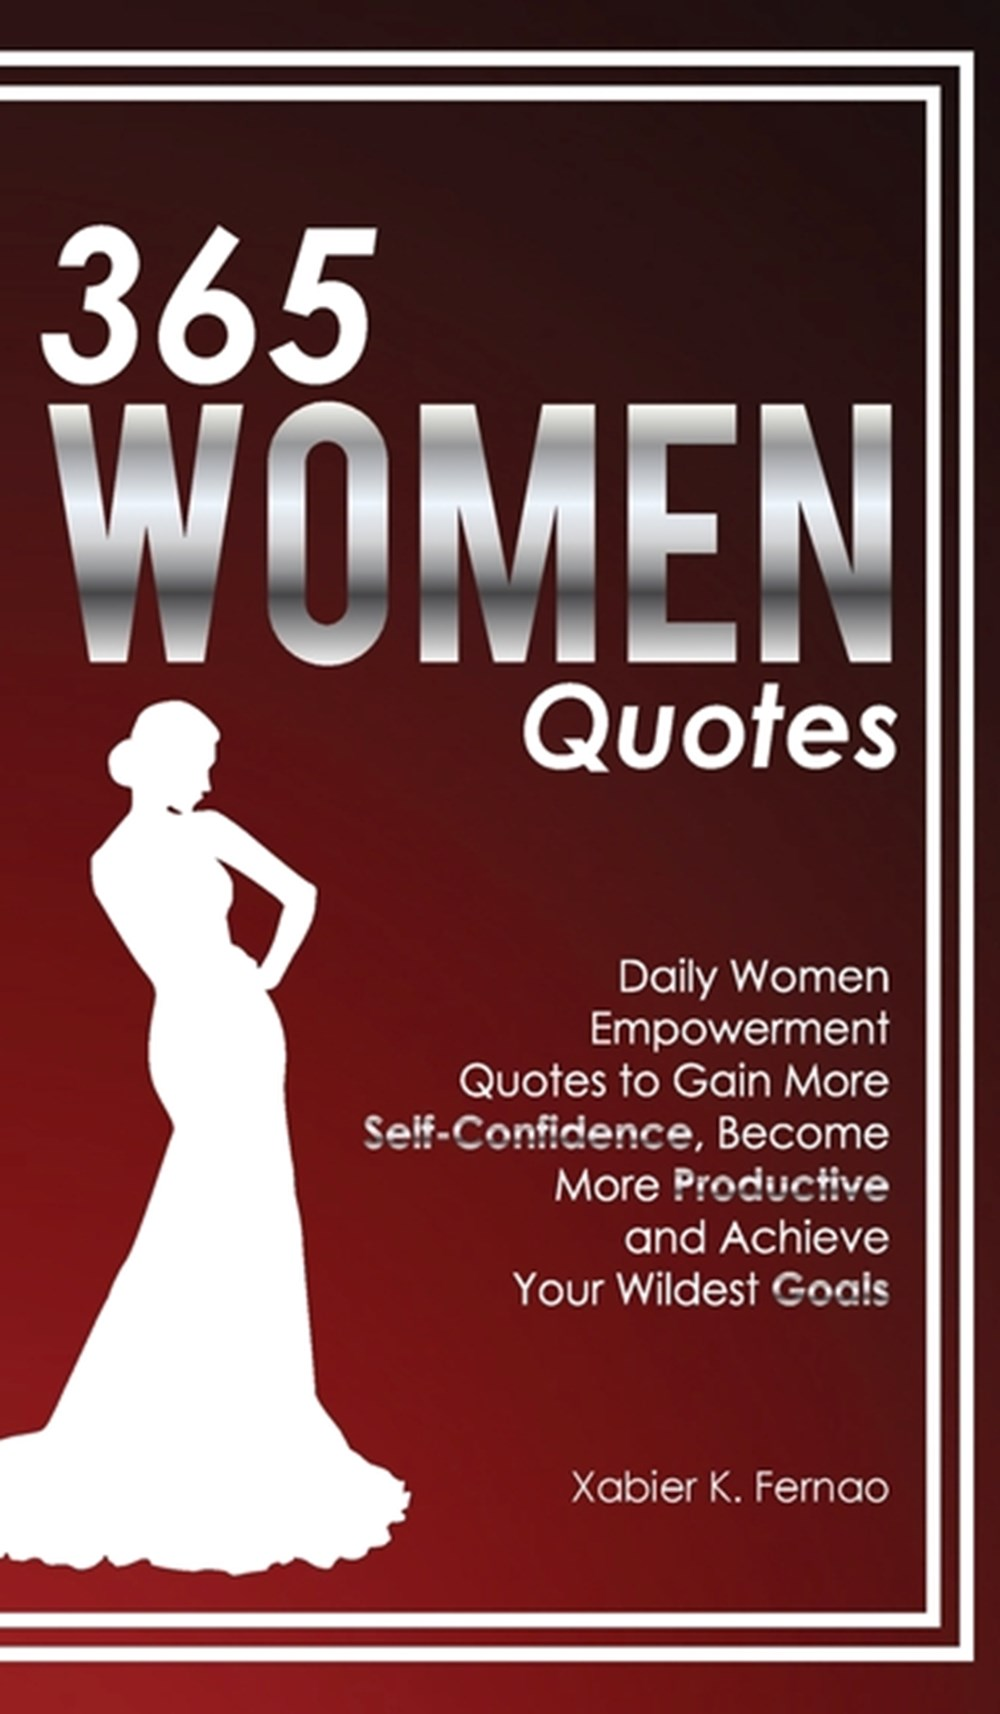 365 Women Quotes Daily Women Empowerment Quotes to Gain More Self-Confidence, Become More Productive